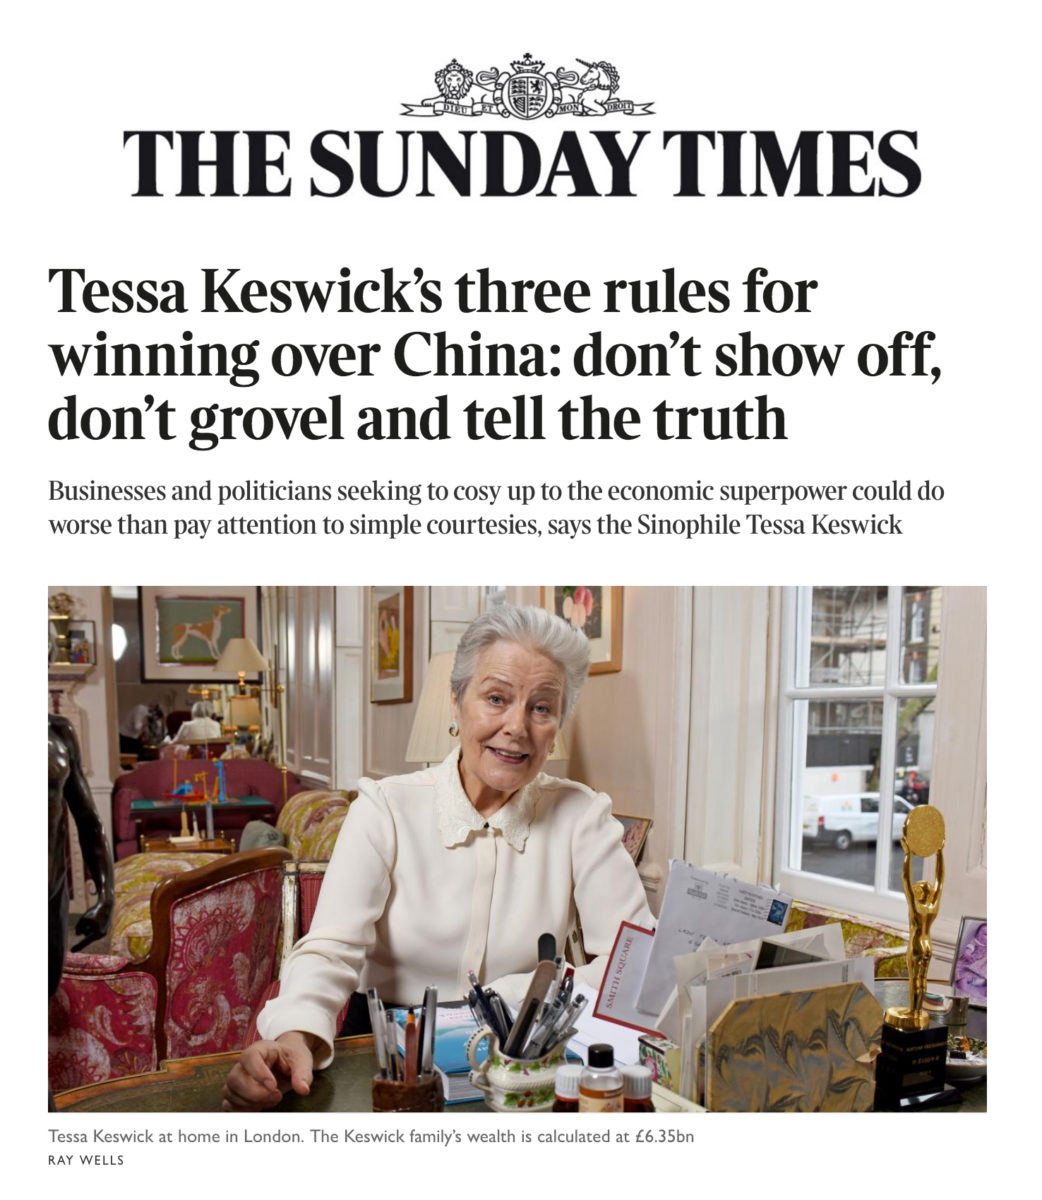 TessaKeswick-TheSundayTimes-January2020.jpg